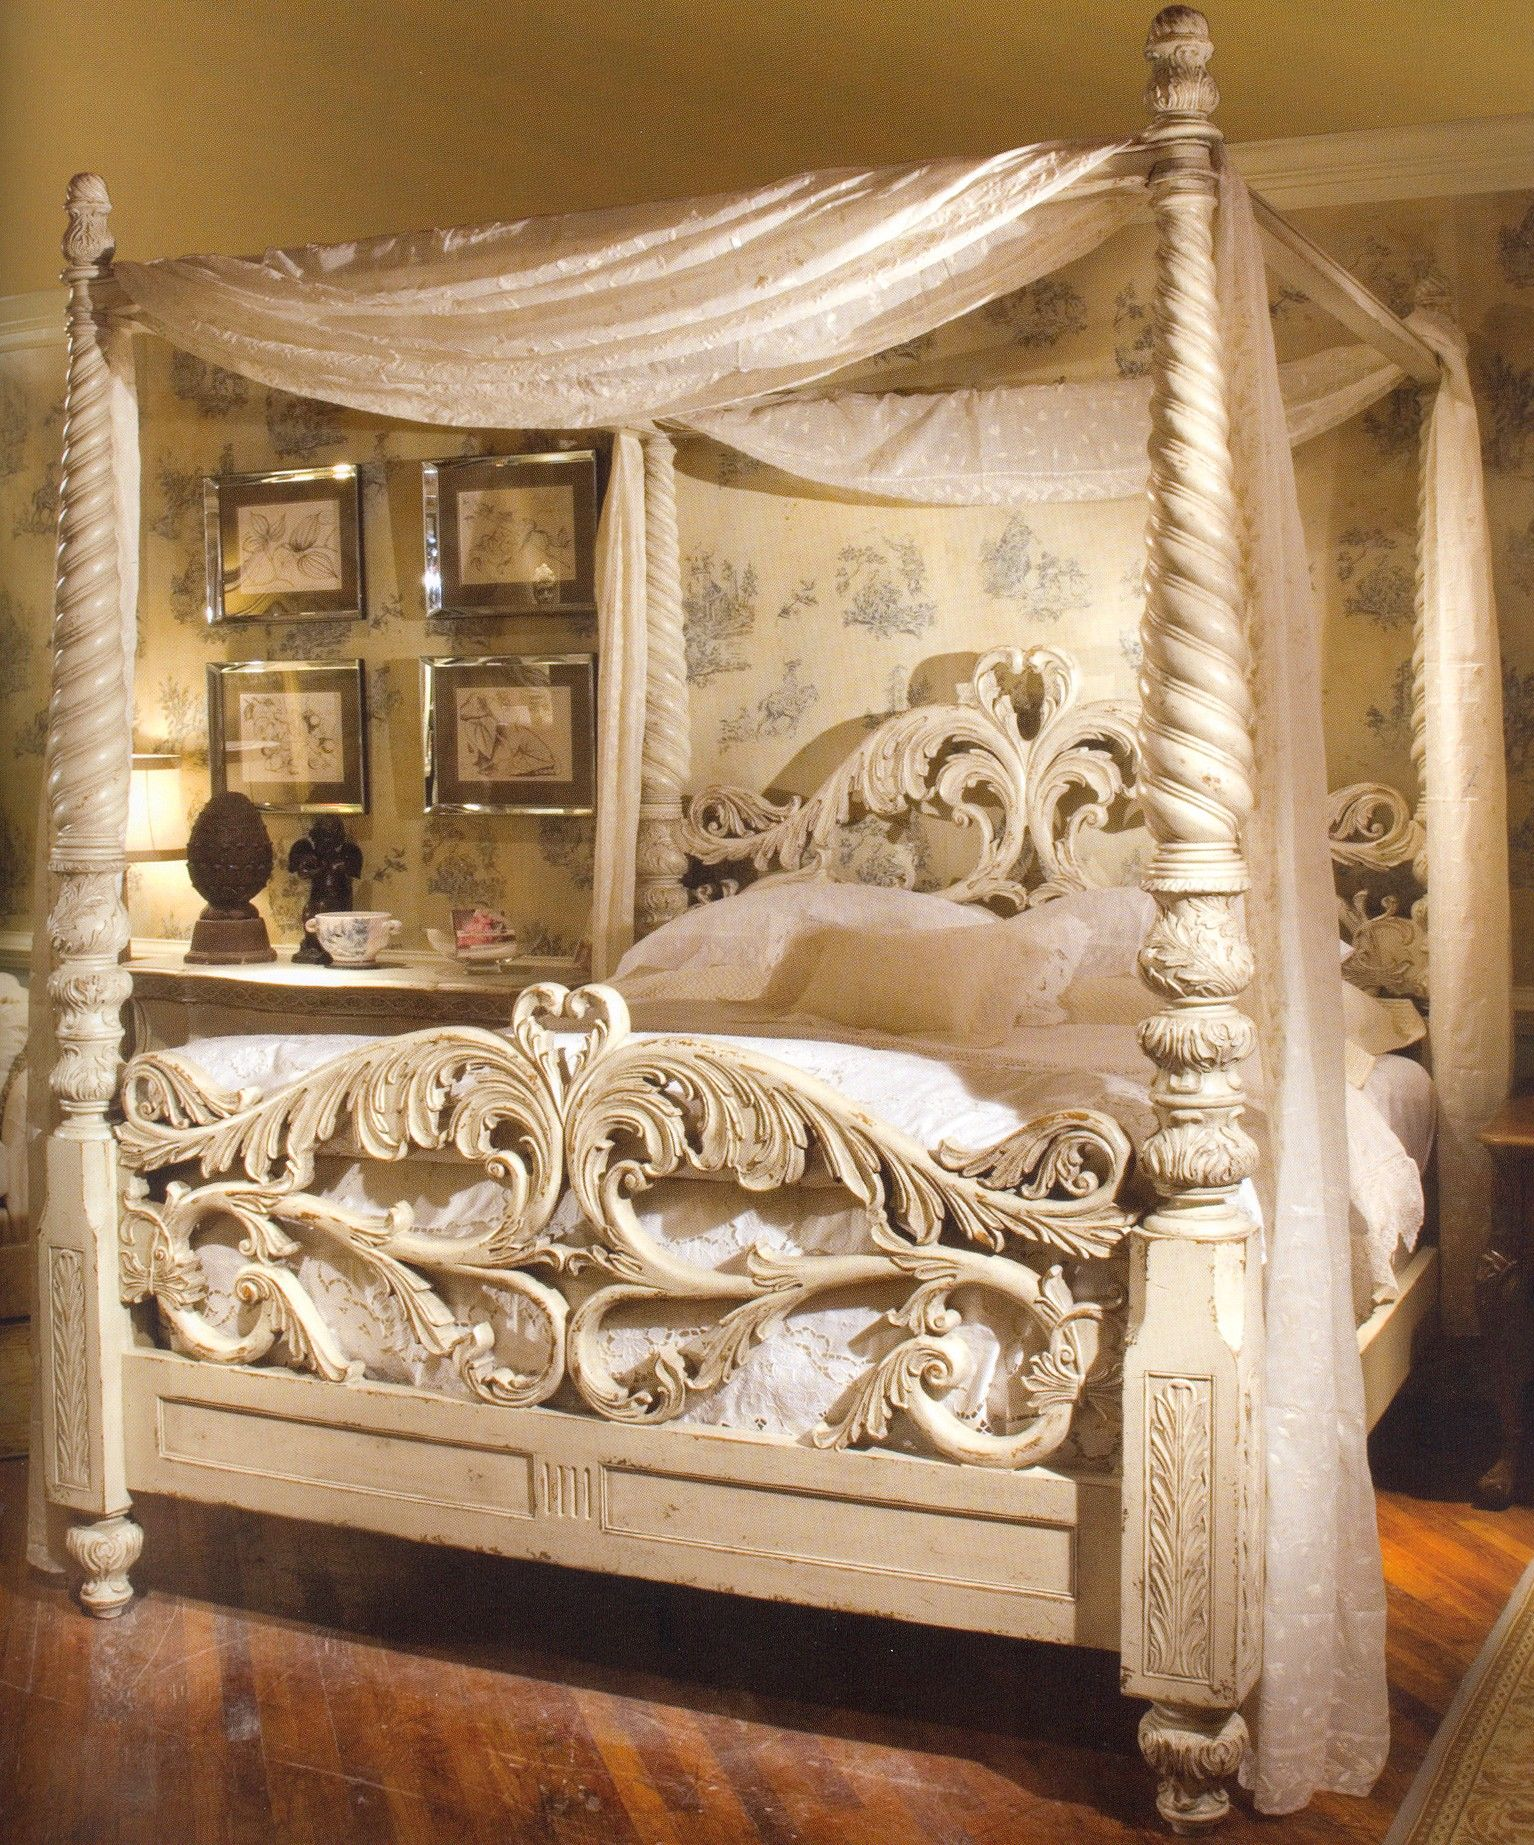 Antique Elegant Bedroom Bed Home Bedroom